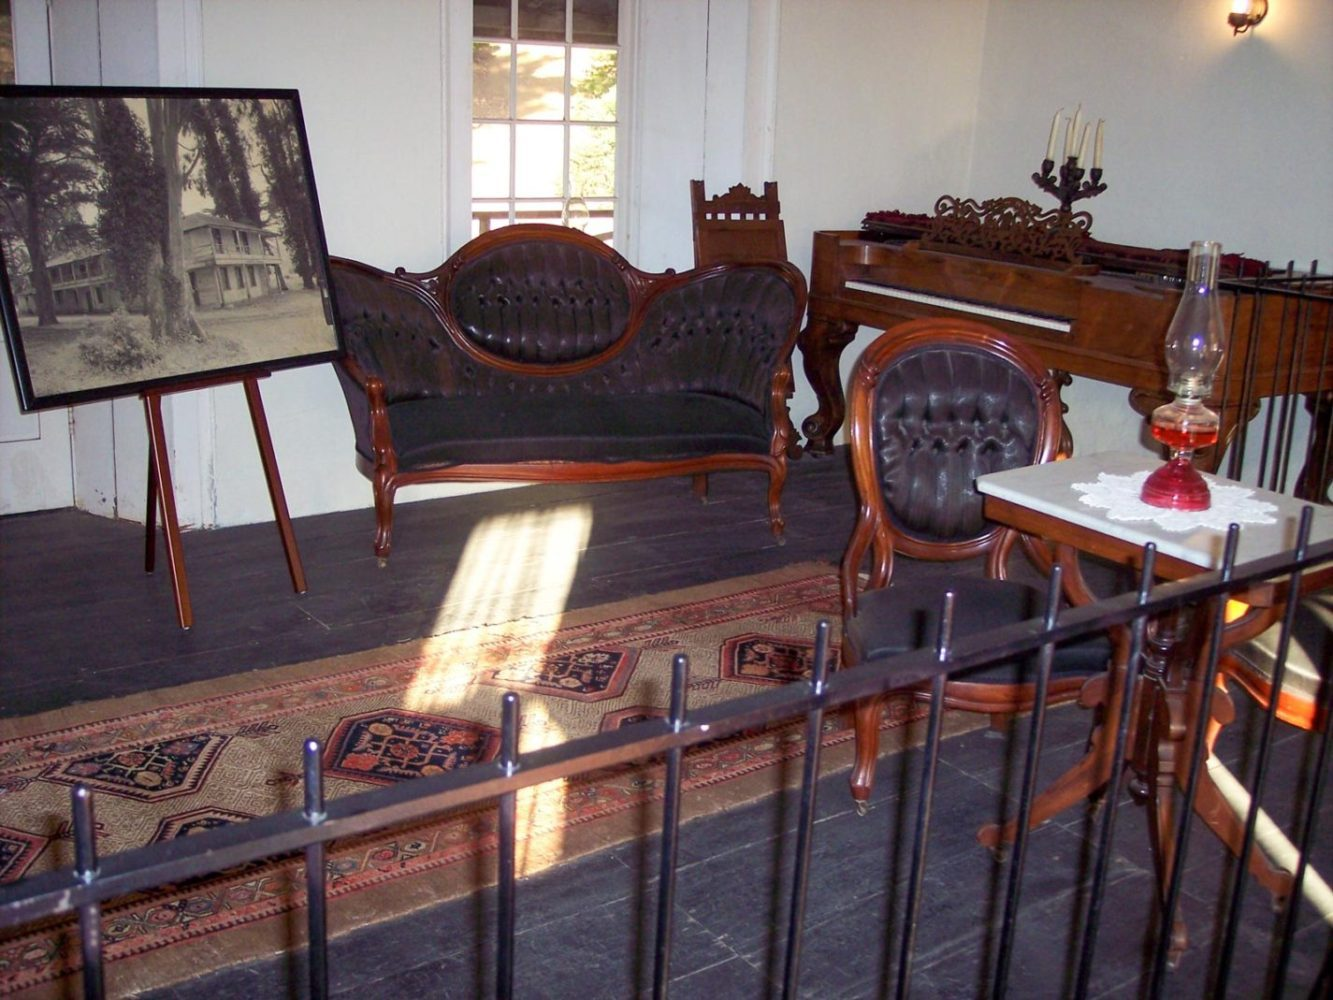 Interior of Sanchez Adobe in Woodside with period furniture from 1800s